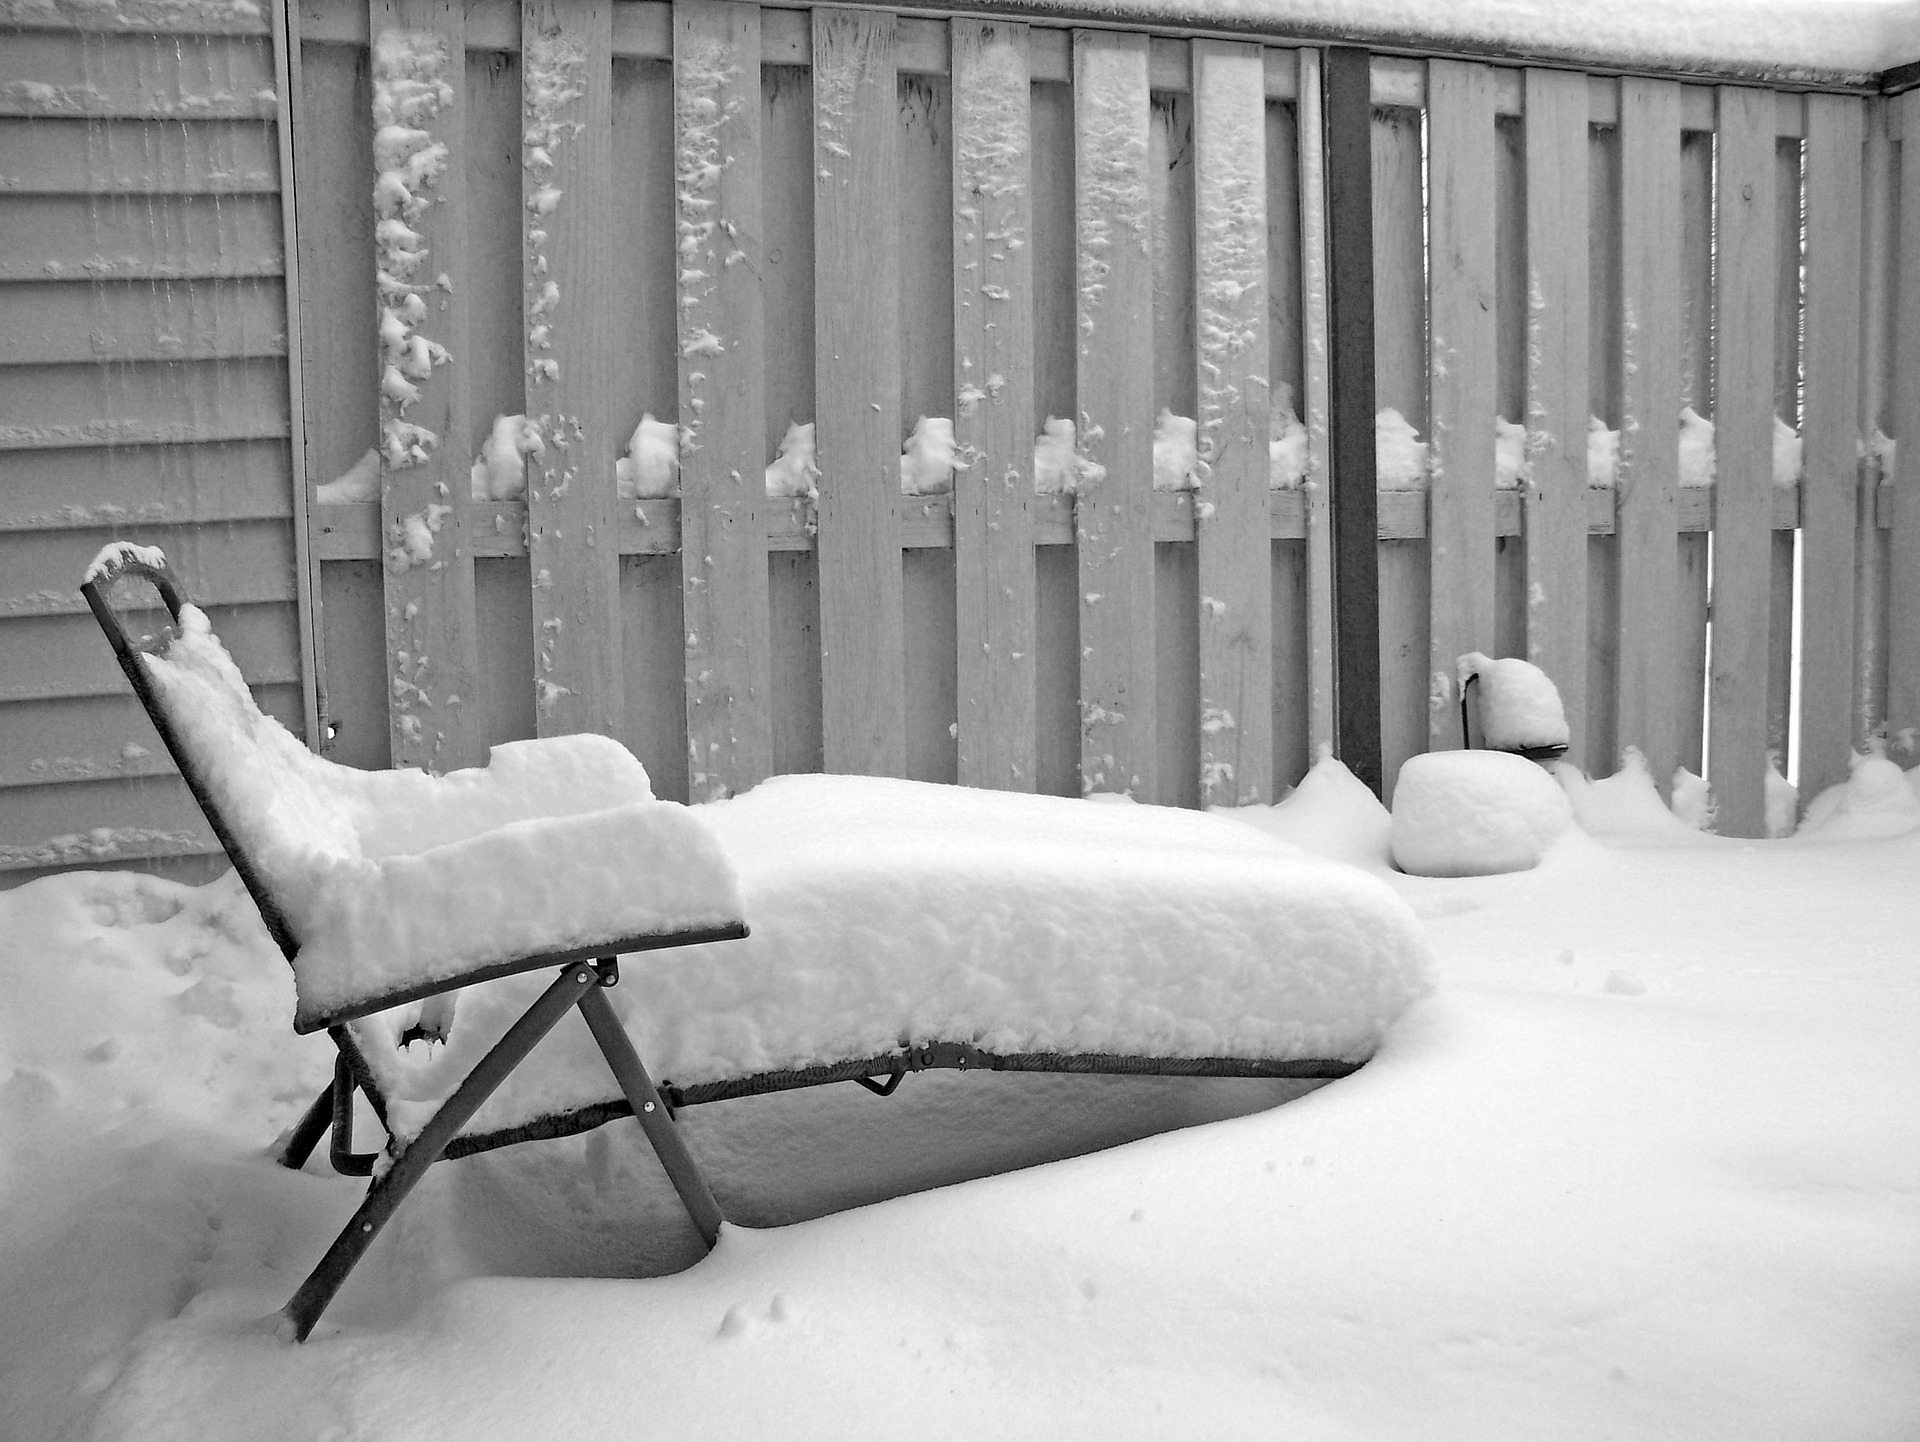 Heating Solutions for Your Patio During Winter - Aspen Homes for Sale